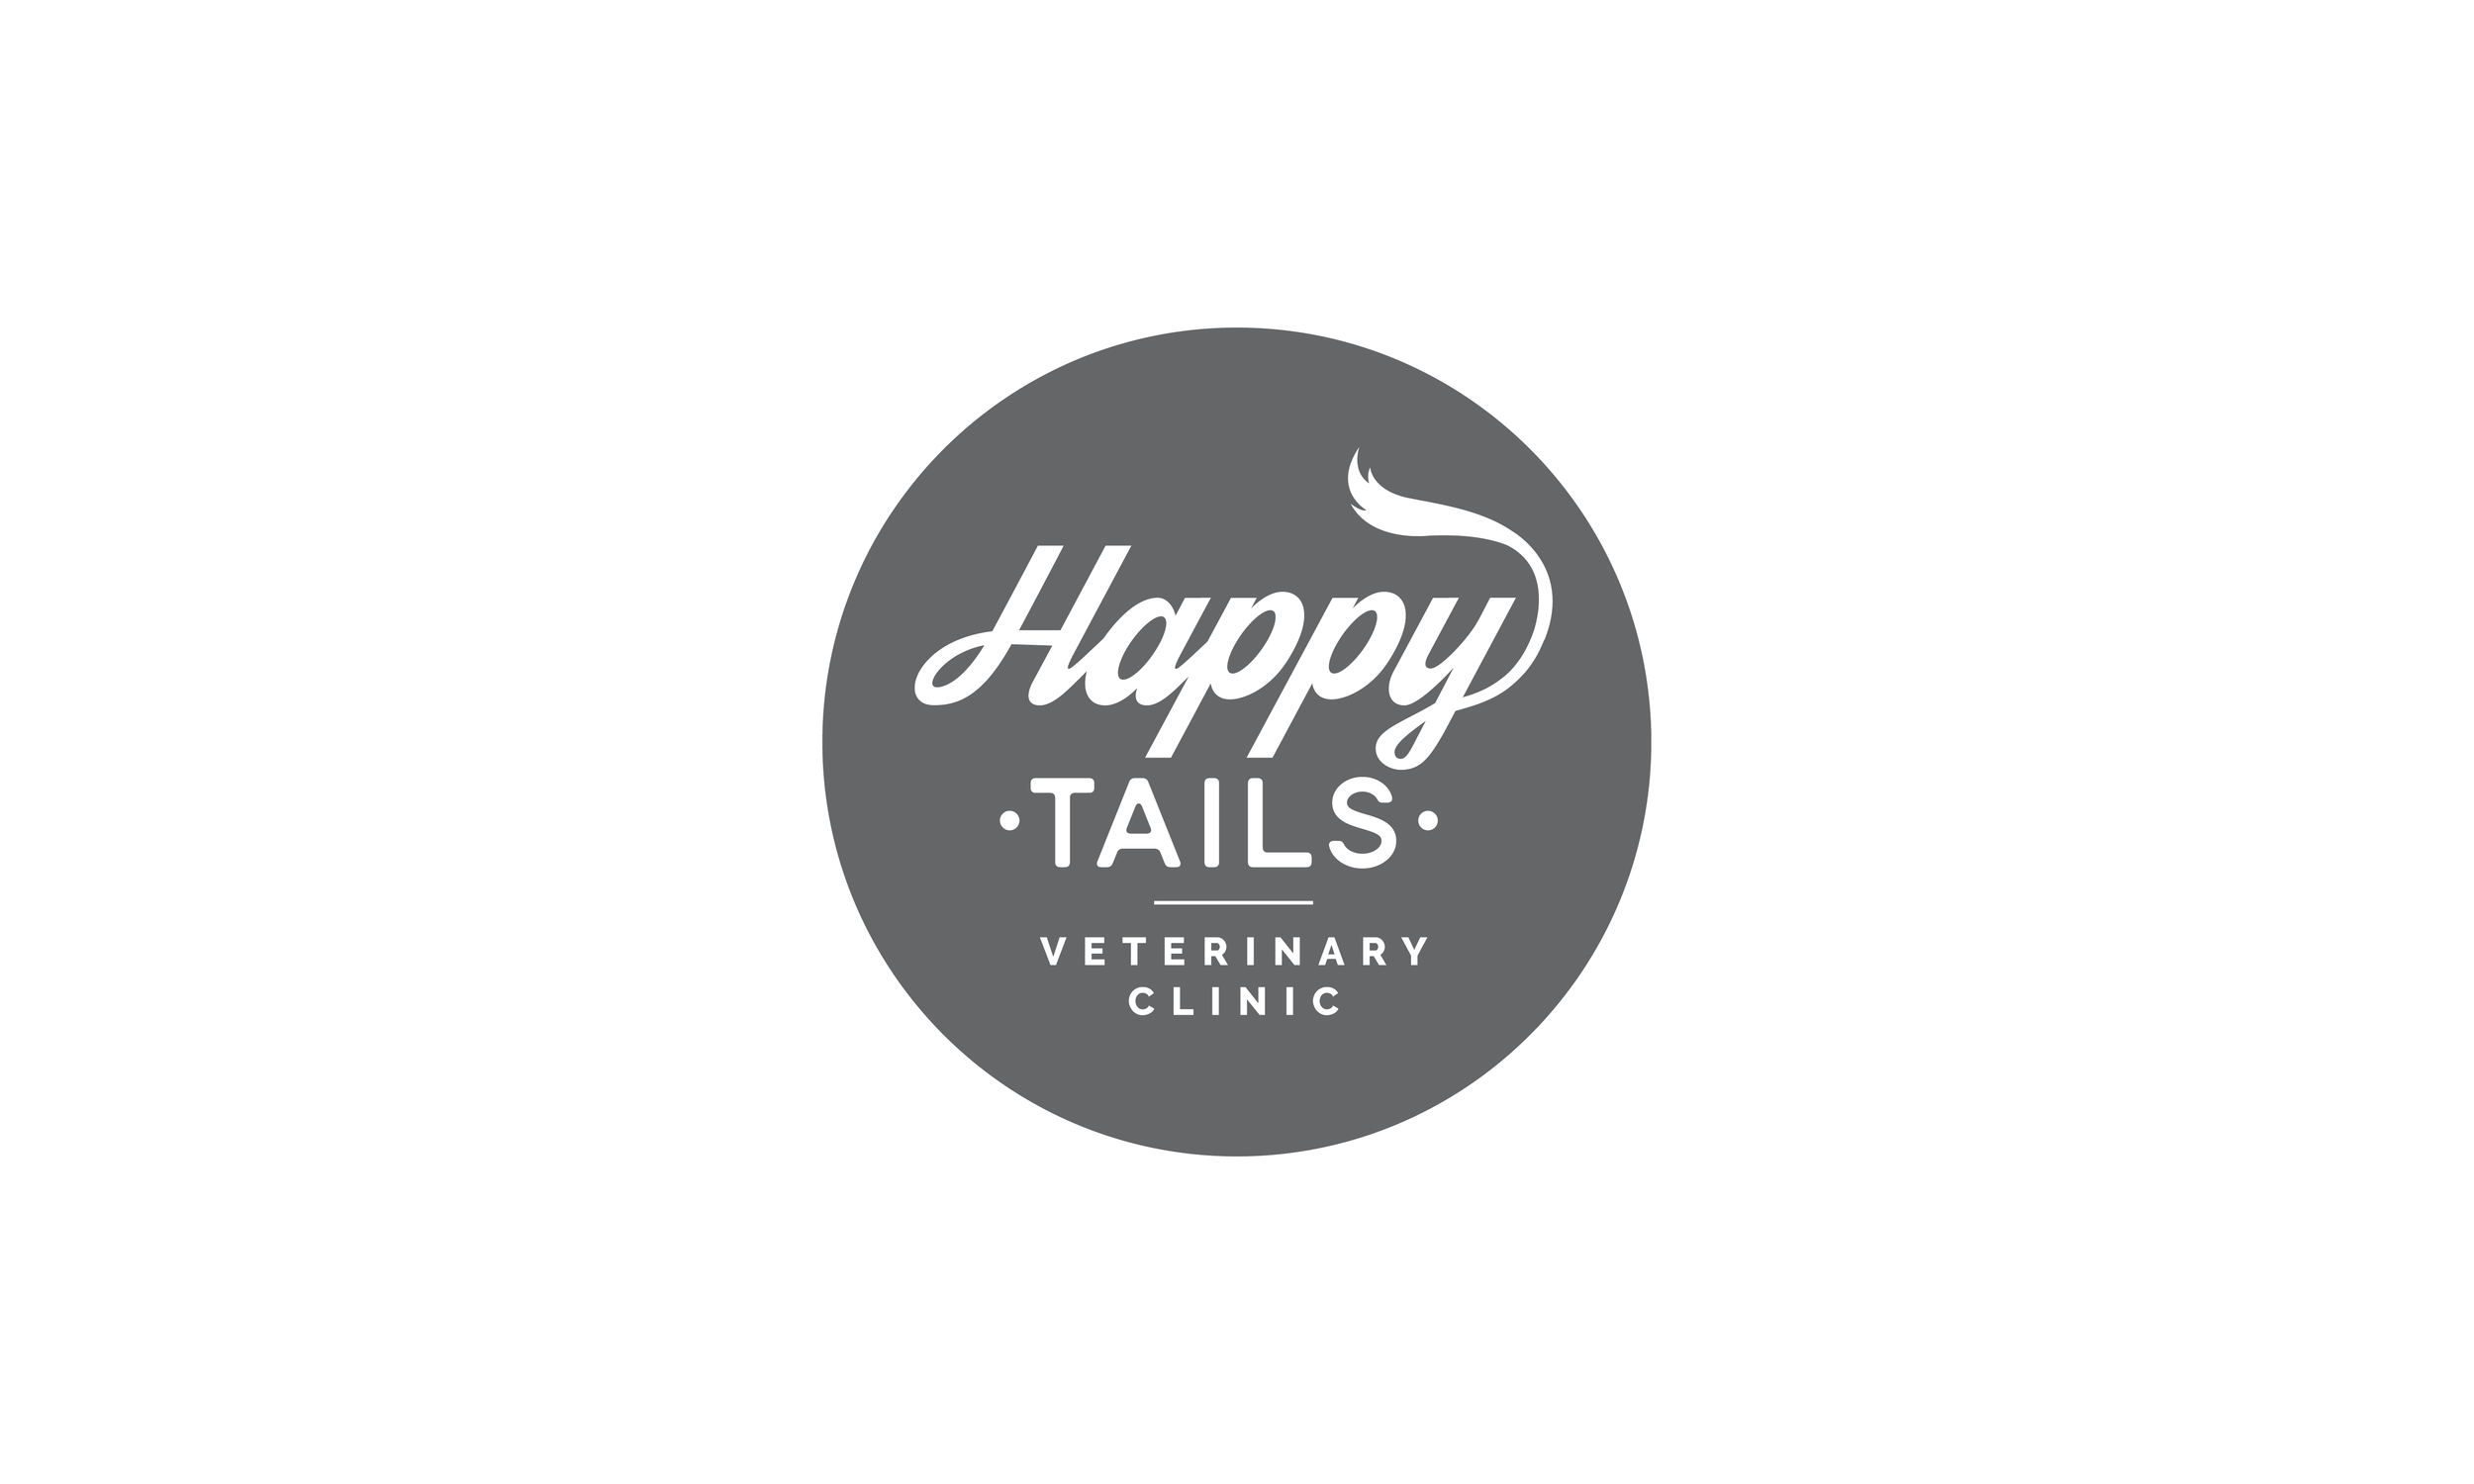 happy-tails-veterinary-clinic-logo.png